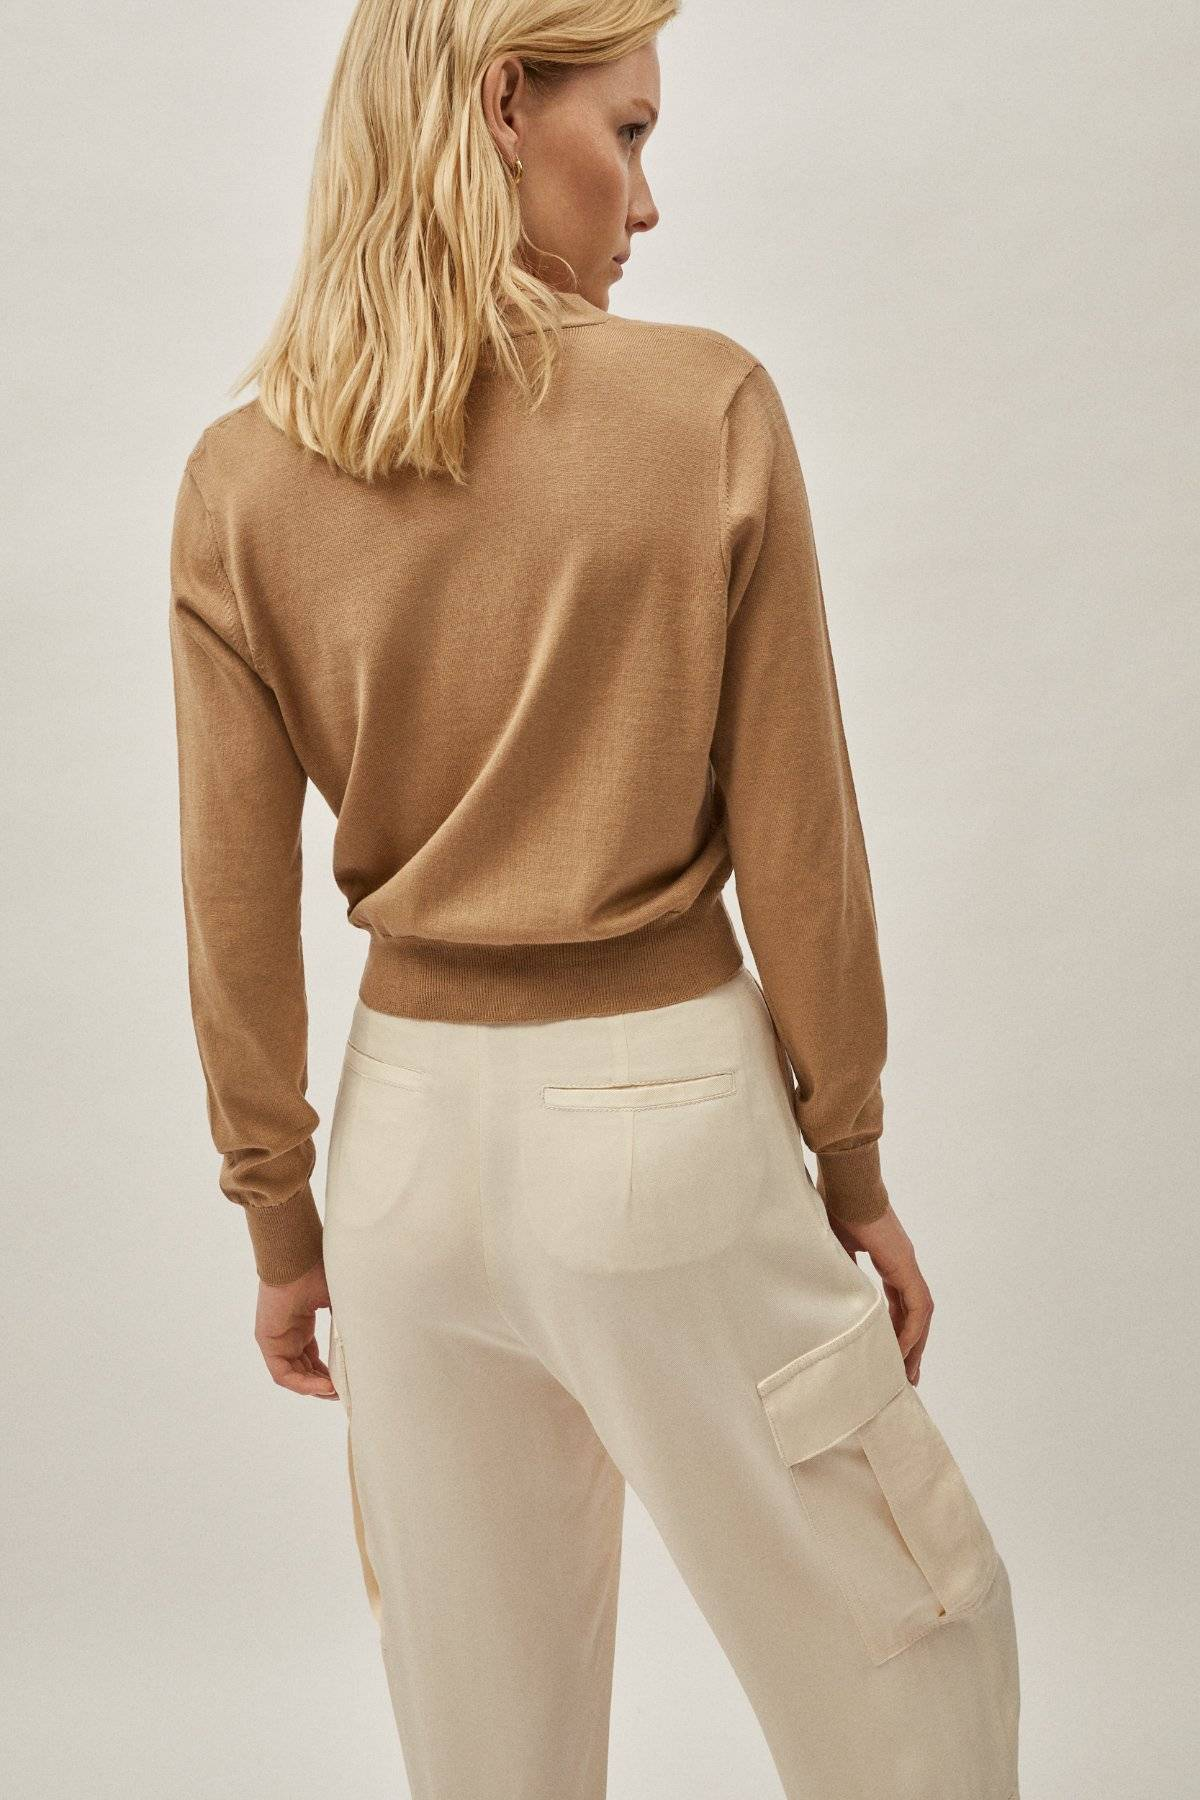 The Silk Cotton Crop Cardigan - Camel